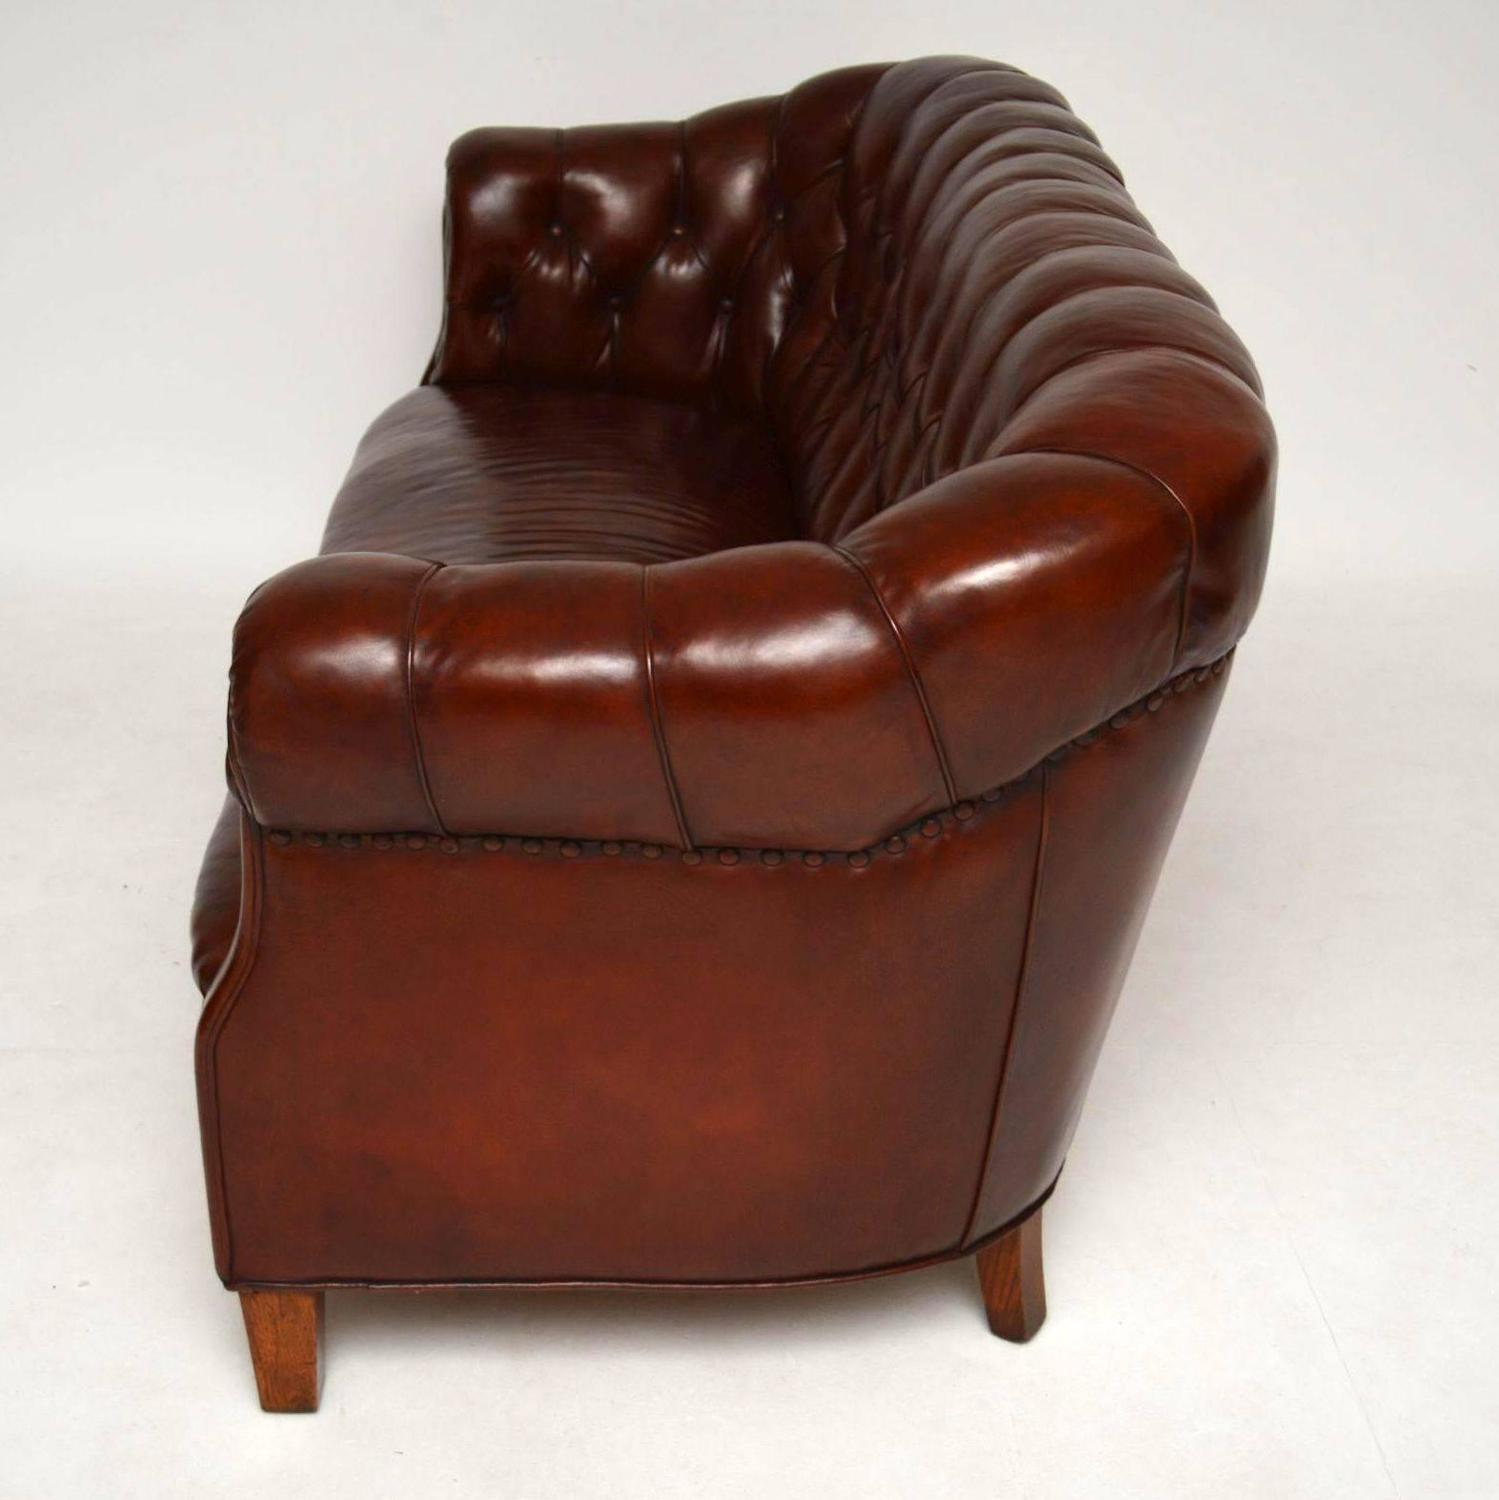 Antique Swedish Leather Chesterfield Sofa For Sale At 1stdibs